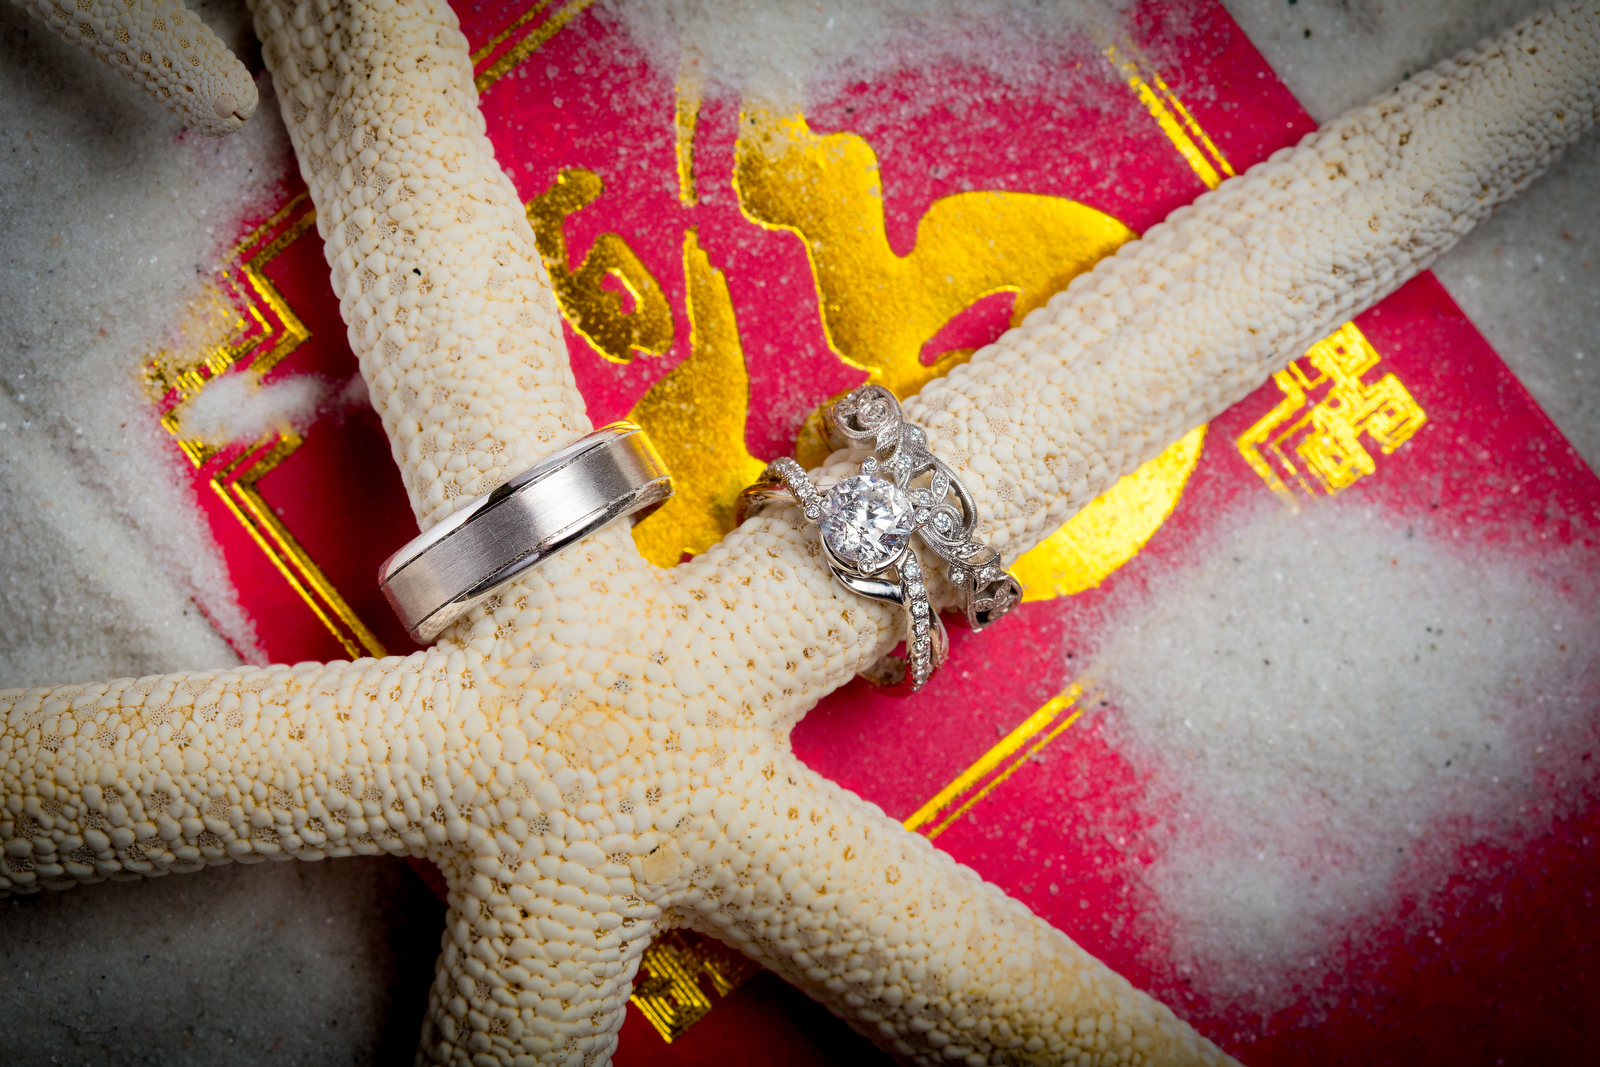 Alina & Patrick's wedding rings sit on a starfish during the reception at the Seattle Aquarium. (Wedding Photography by Scott Eklund - Red Box Pictures)